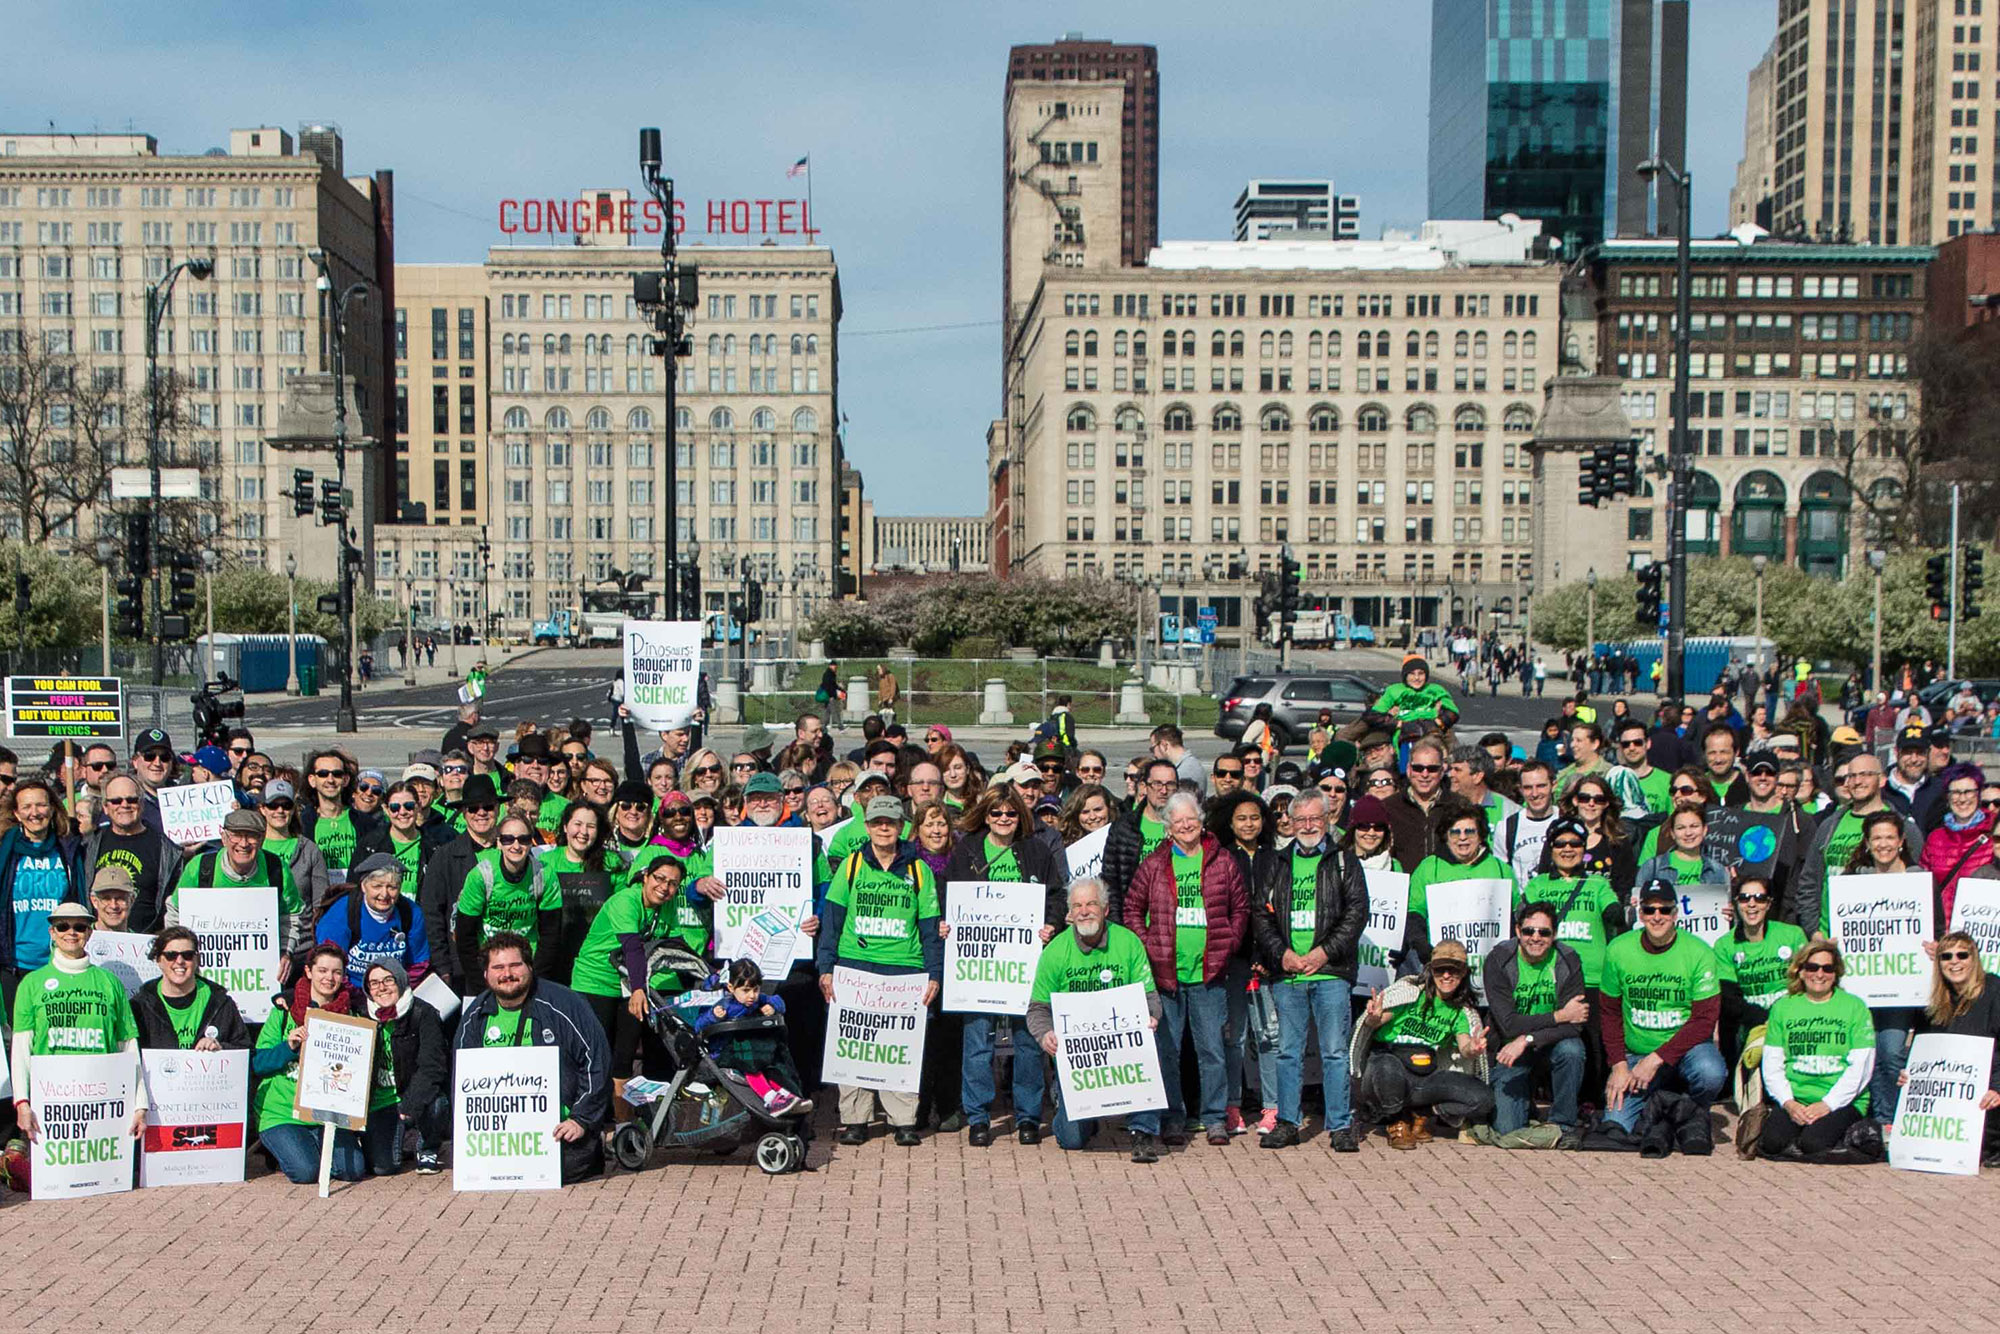 A large group of museum staff holding signs pose in Grant Park before the 2017 March for Science.